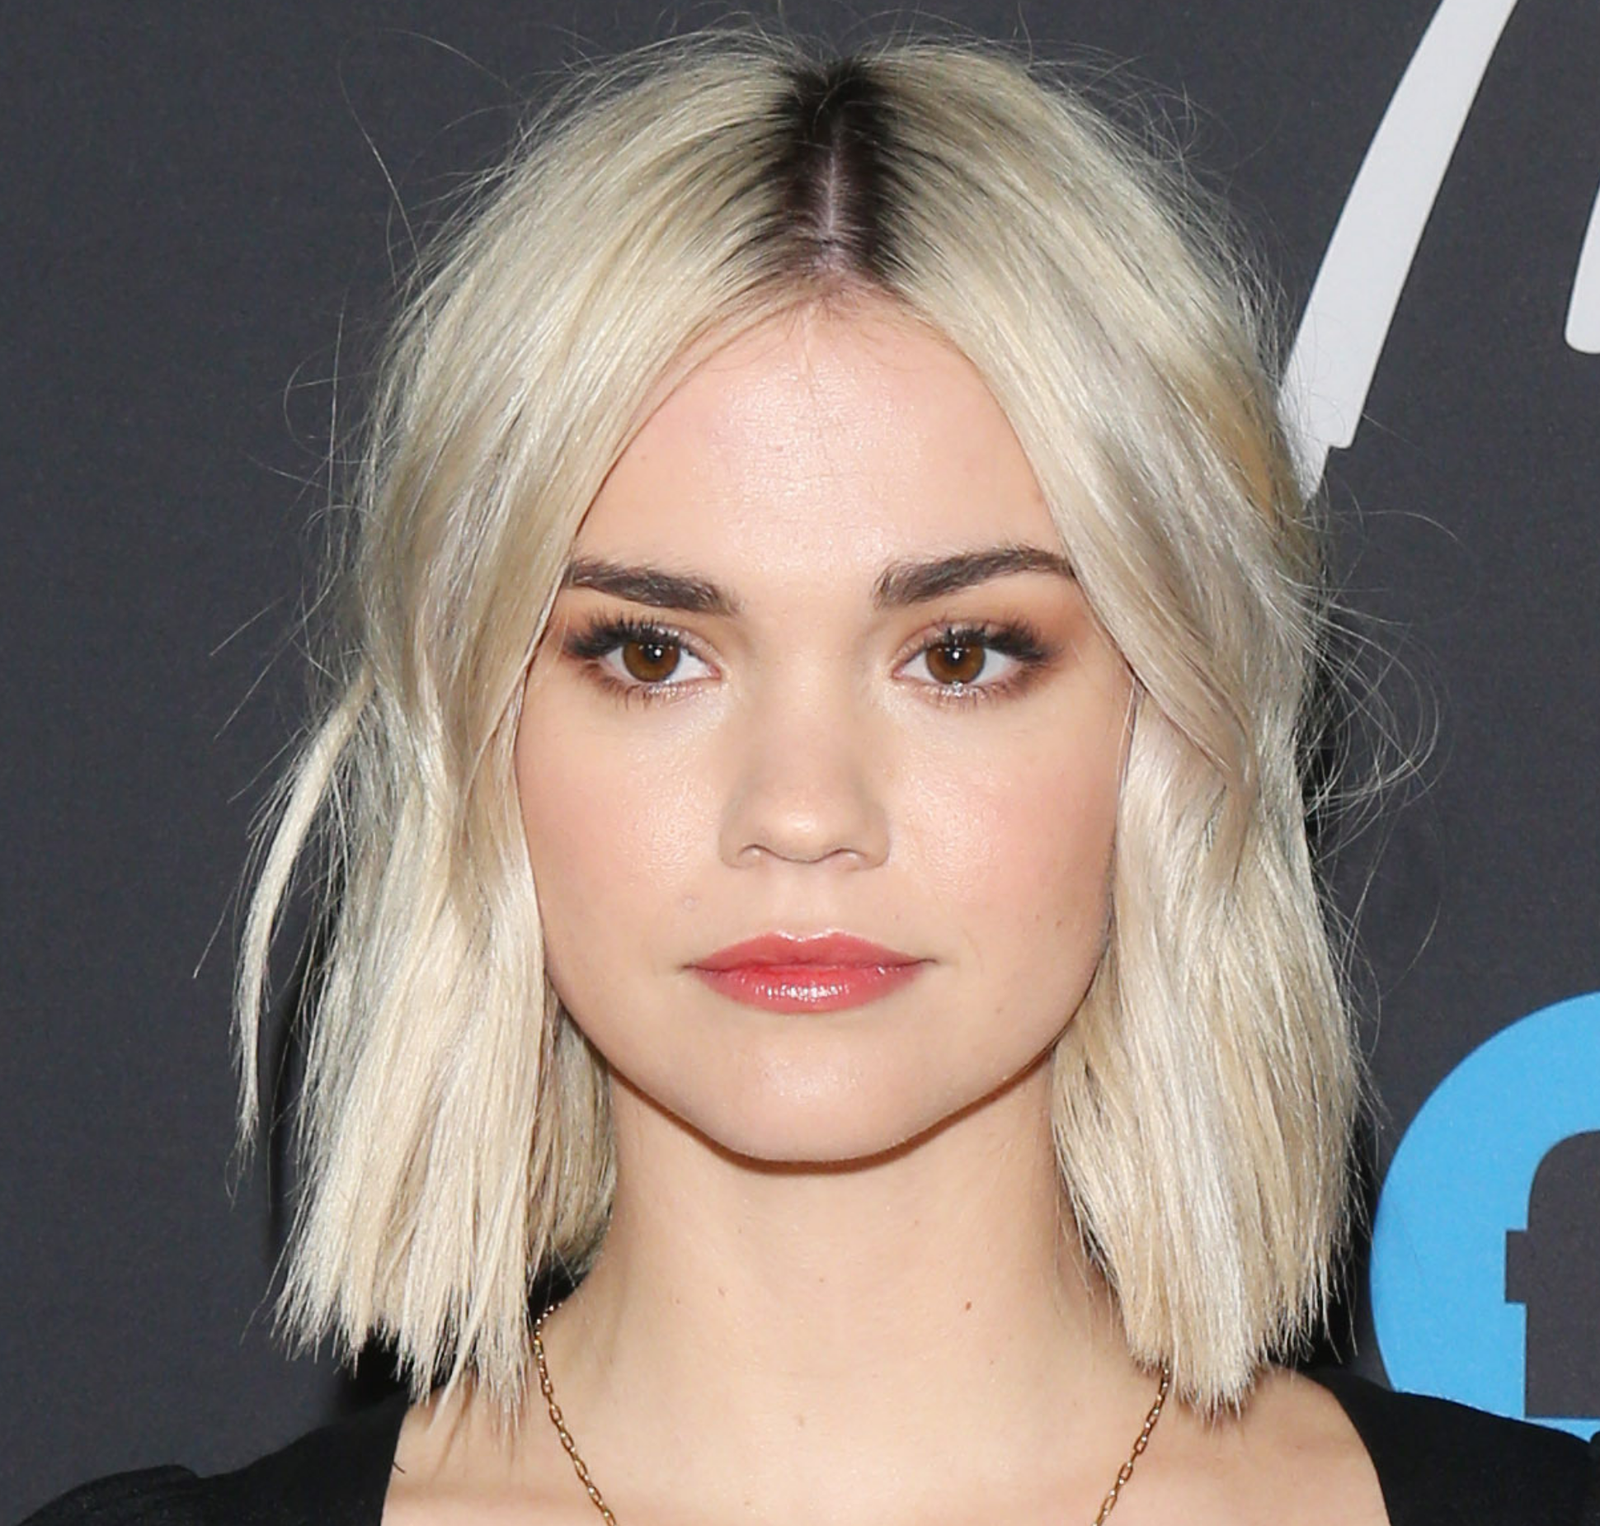 14 Fresh Hair Looks For Each Skin Tone In 2020 Blonde Hair Brown Eyes Blonde Hair Dark Eyebrows Blonde Hair With Roots